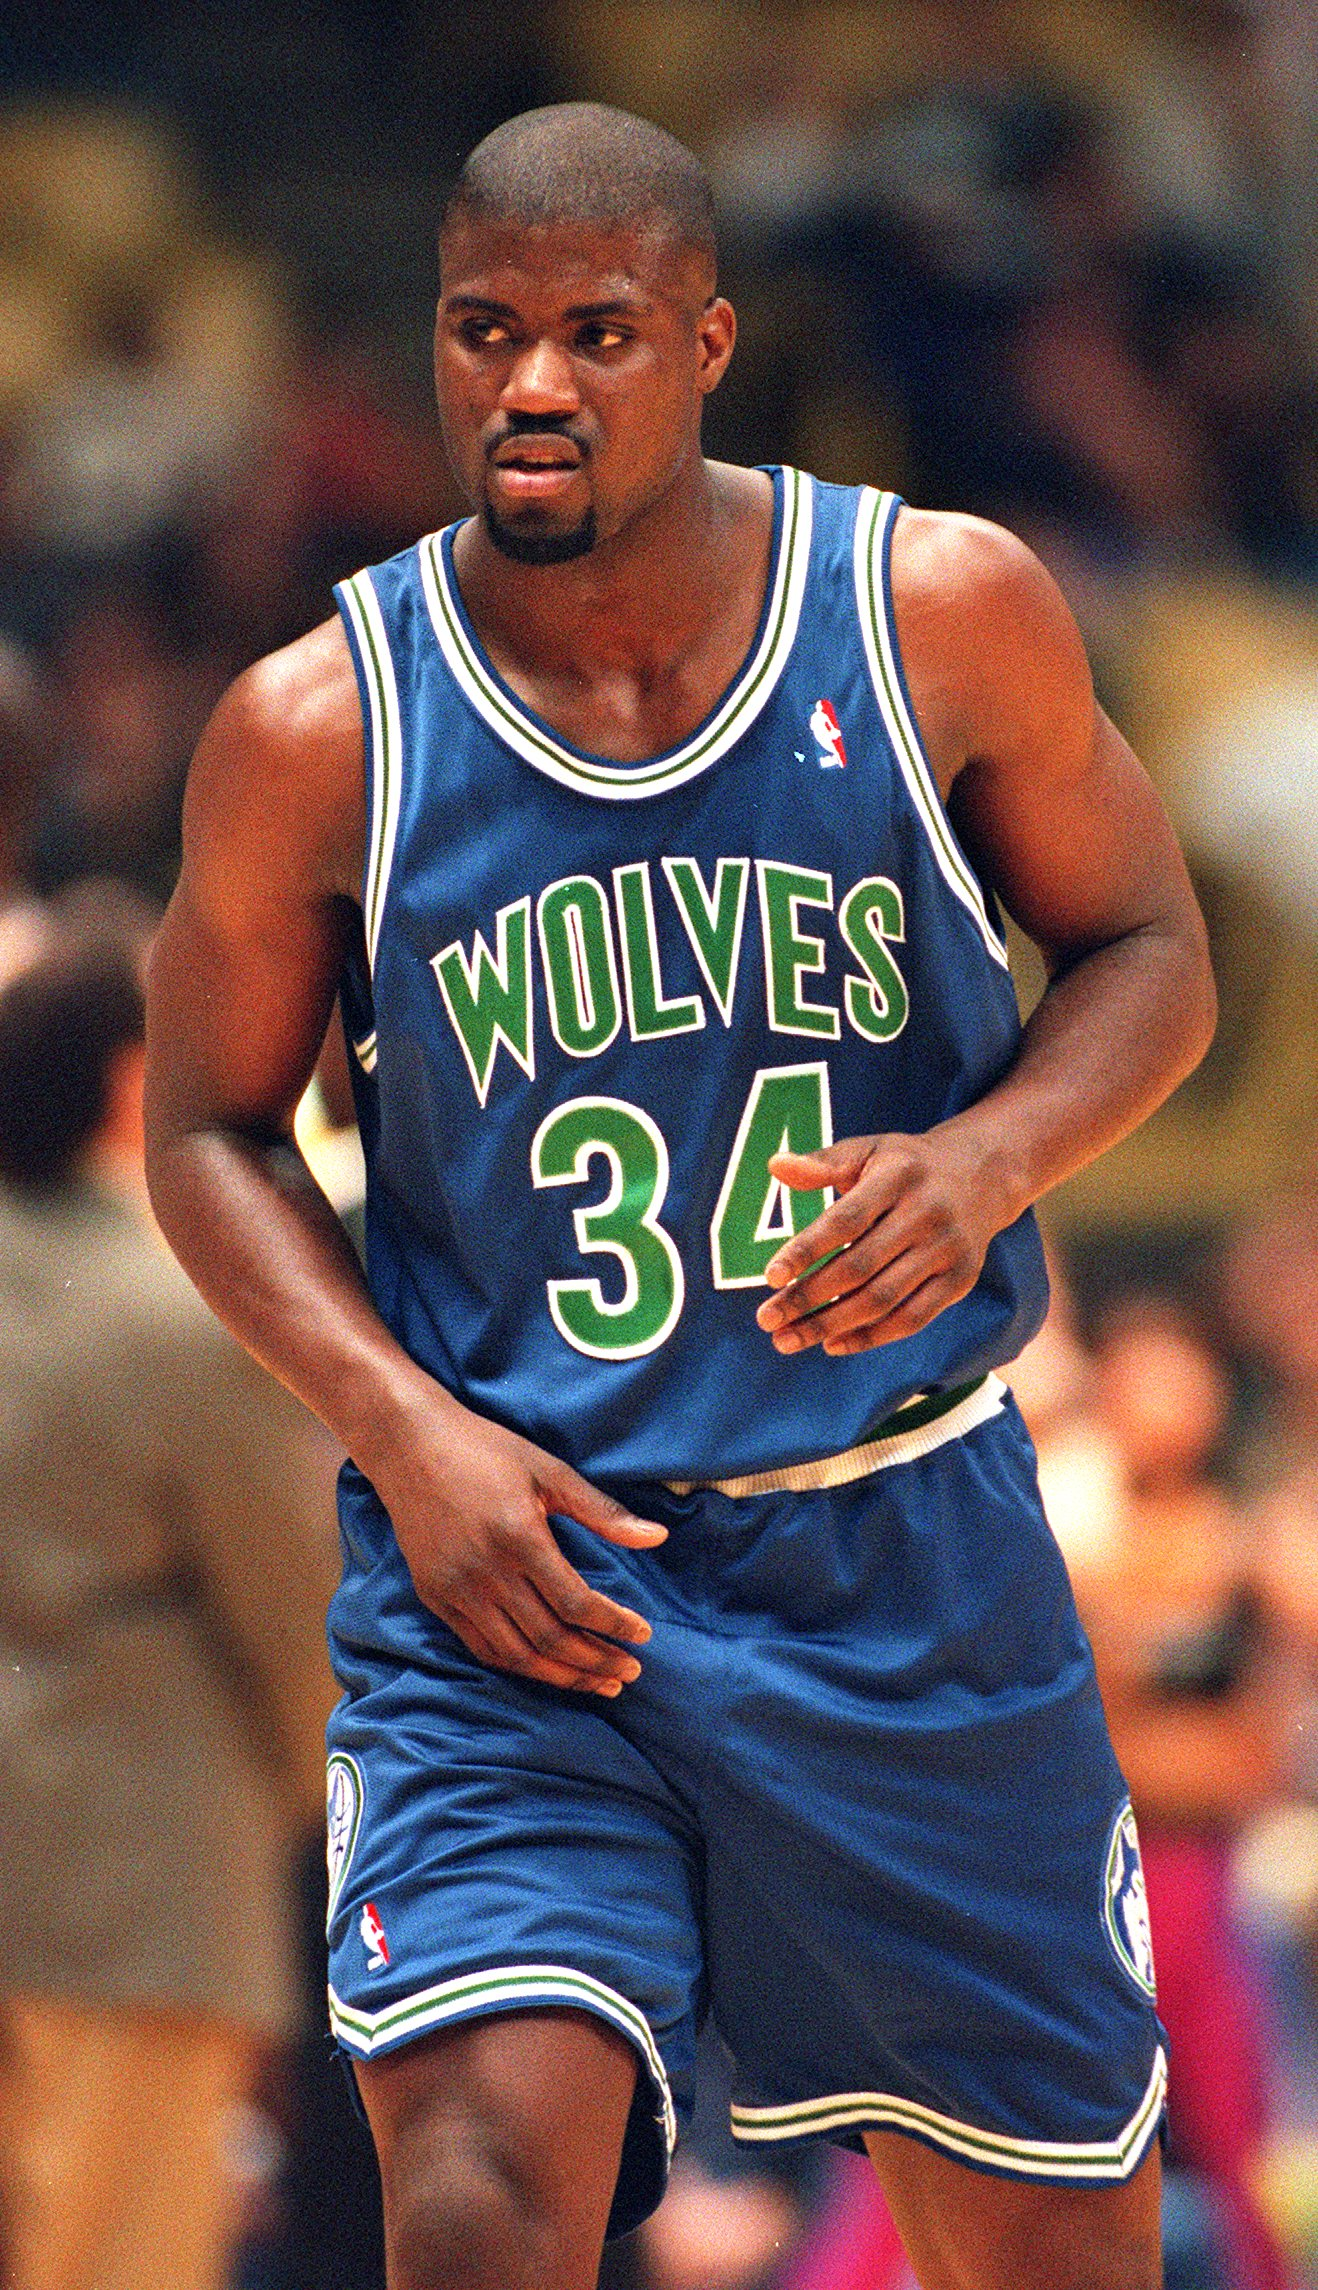 5 DEC 1993:  MINNESOTA TIMBERWOLVES FORWARD ISAIAH RIDER ON THE COURT AGAINST THE LAKERS AT THE GREAT WESTERN FORUM IN INGLEWOOD, CALIFORNIA. Mandatory Credit: Al Bello/ALLSPORT